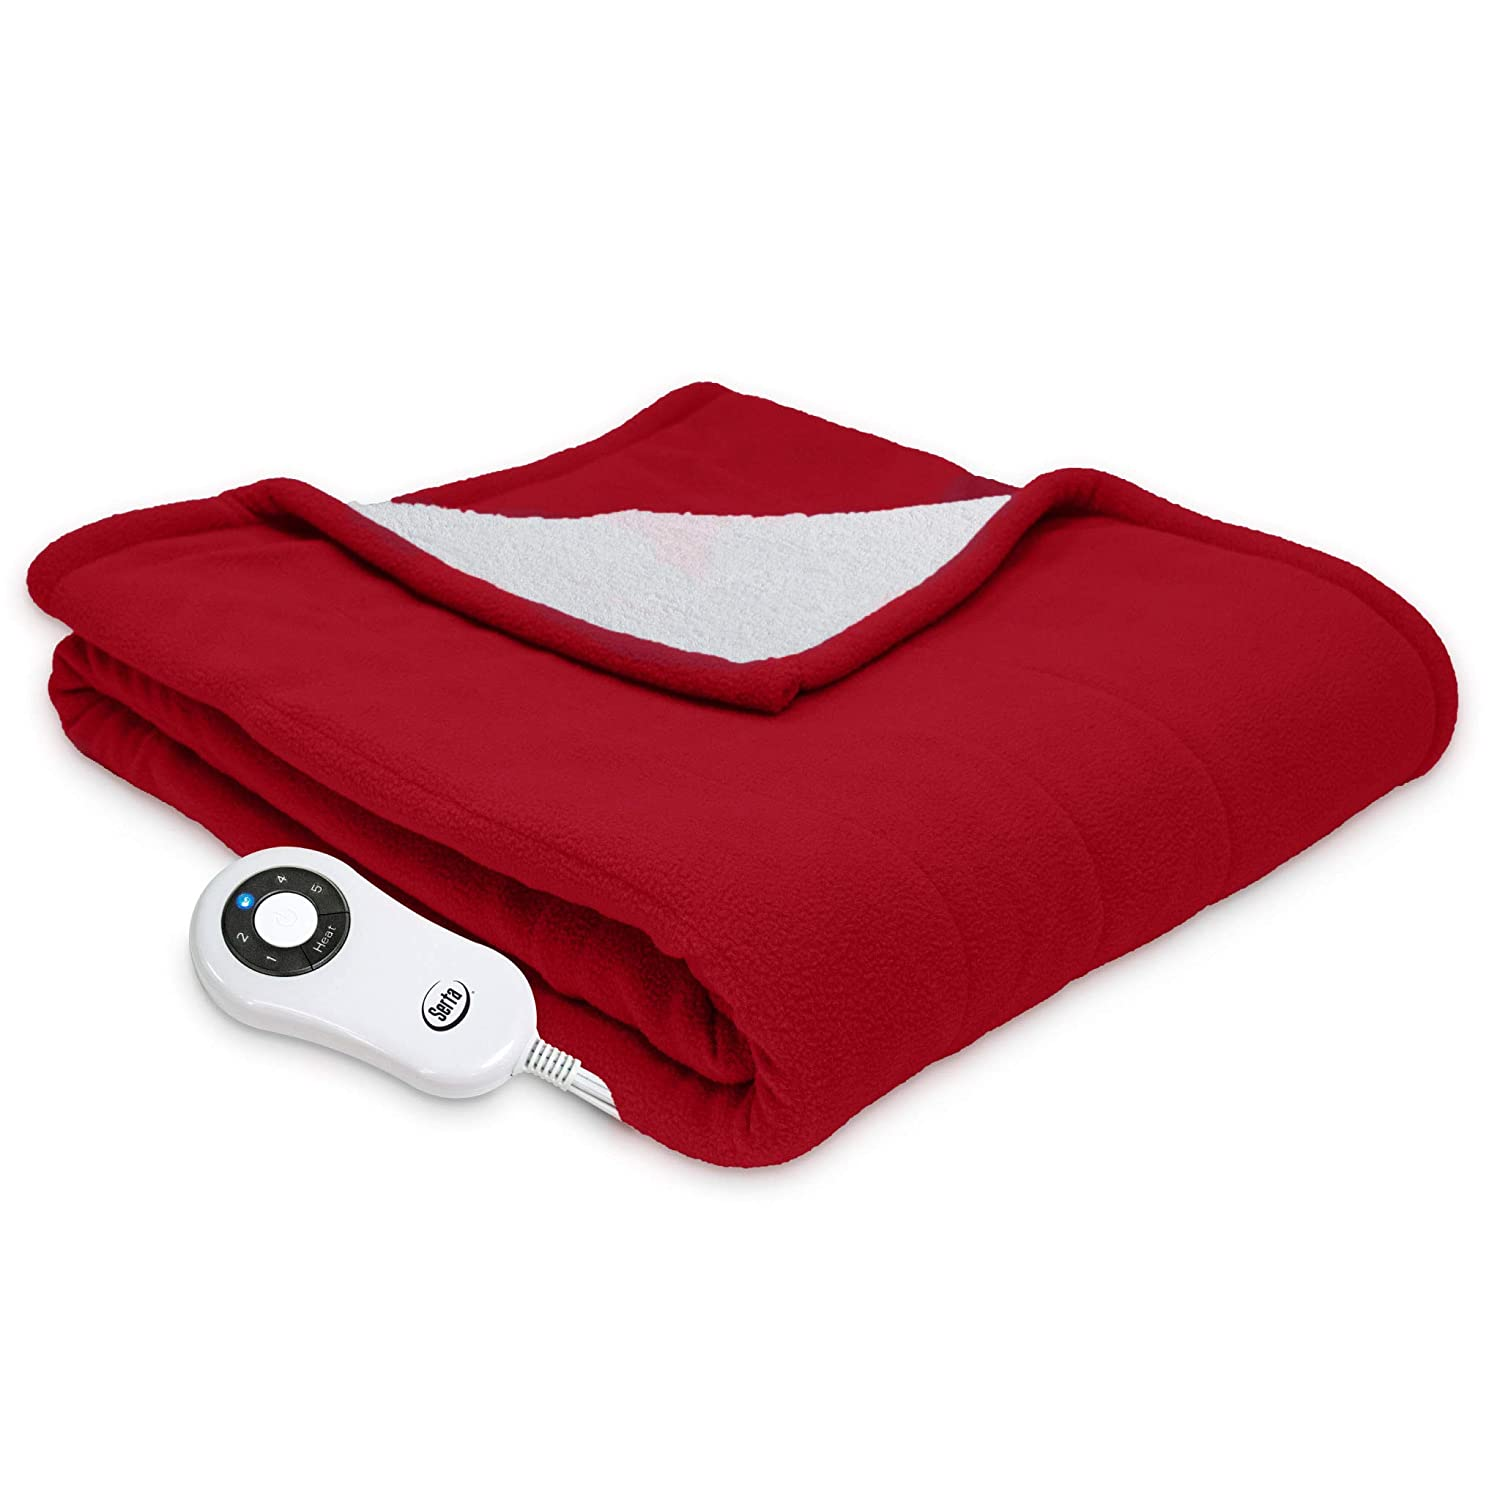 "Serta | Reversible Sherpa/Fleece Heated Electric Throw Blanket, 50""x60"" With 5 Setting Controller, Red Pepper"